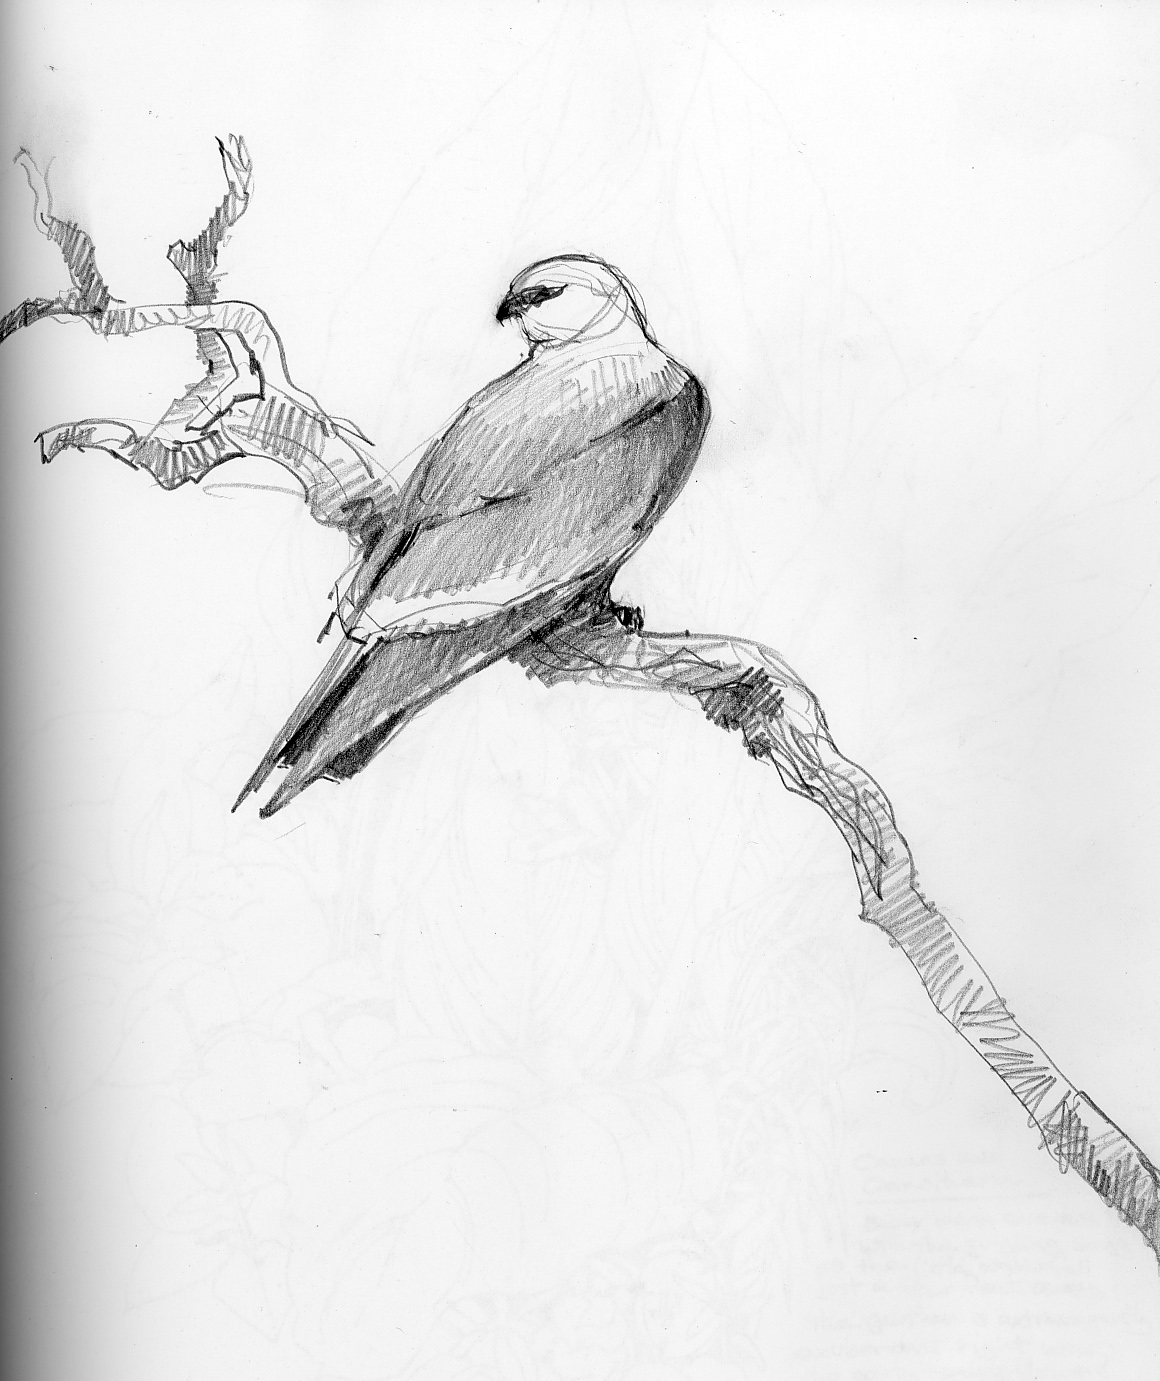 Drawing: North American Bird Sketches